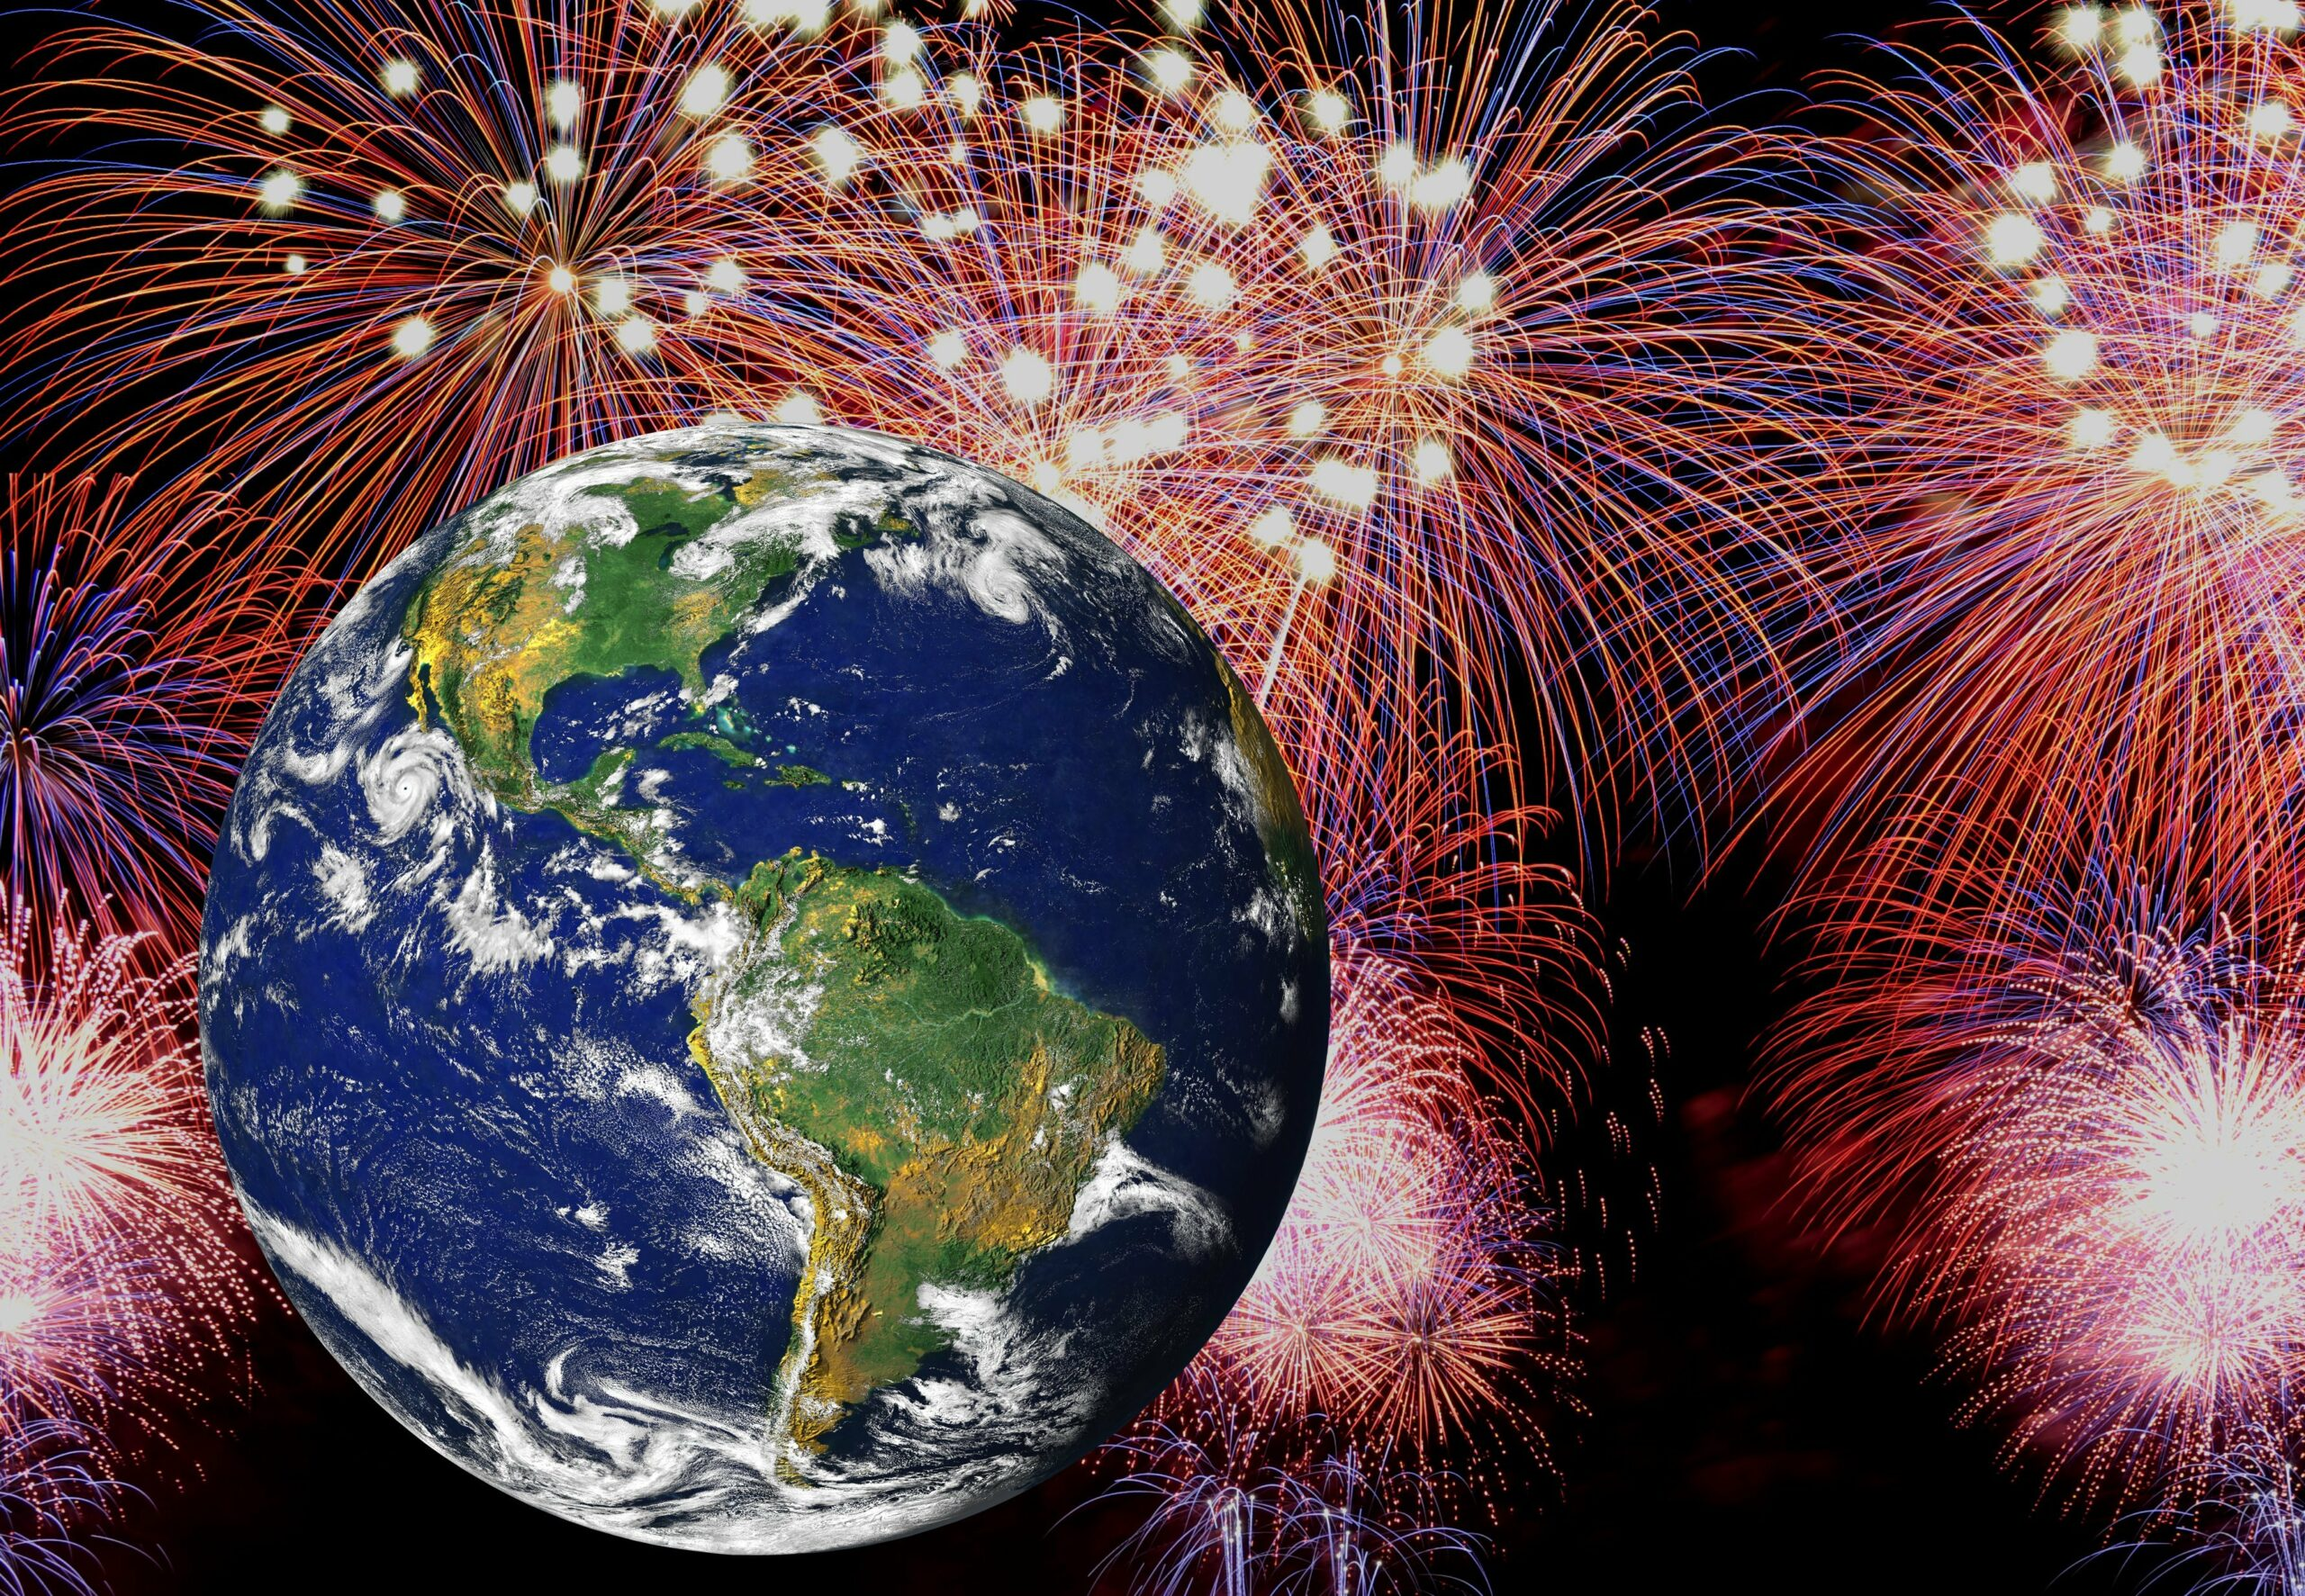 Earth surrounded by fireworks